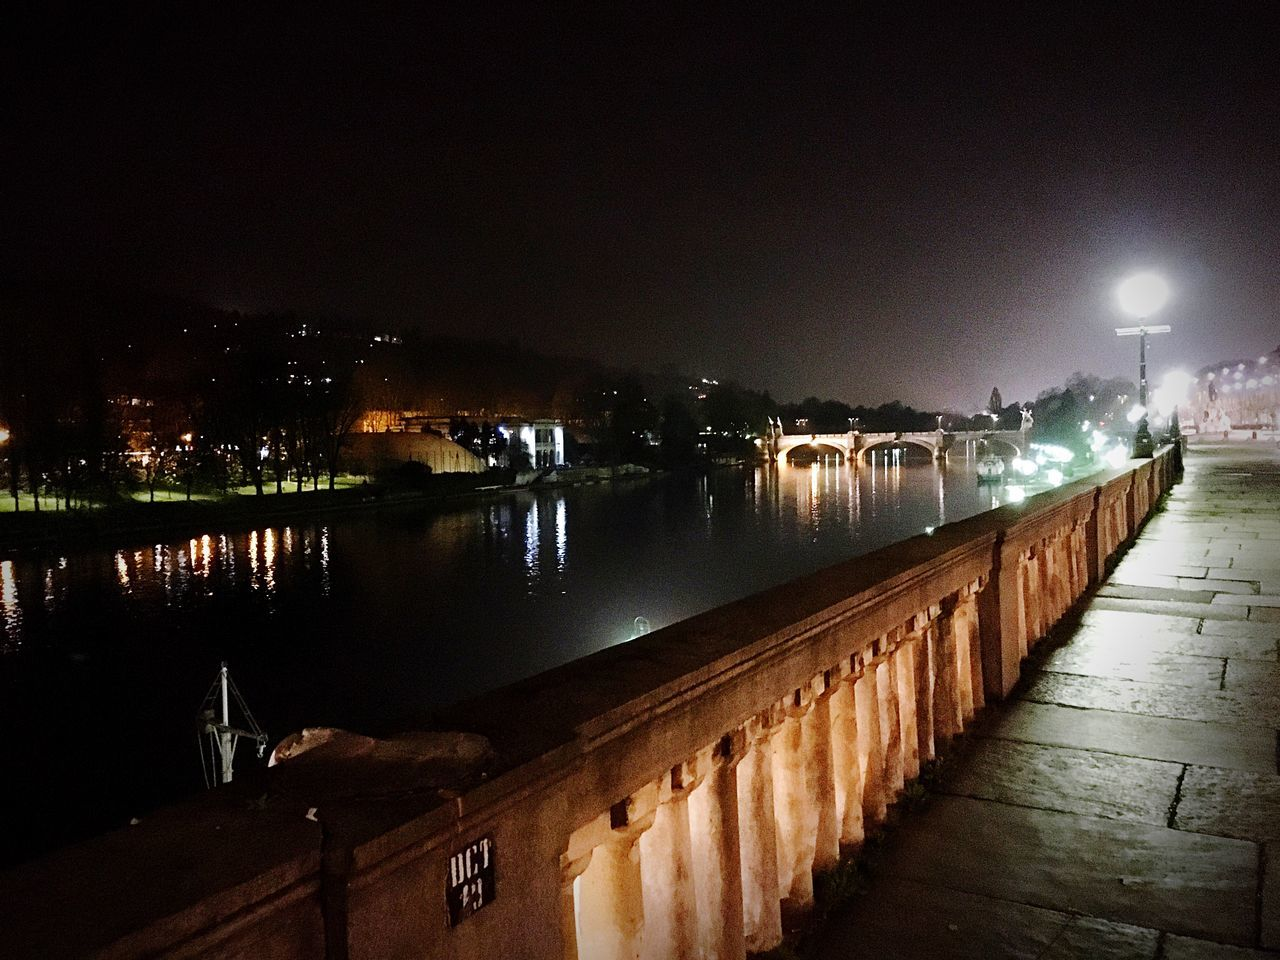 Lungo Po in Turin Turin Turin Italy Torino Italy Italia Po Fiume Po Fiume FiumePo City Urban Urban Landscape Landscape Night Nightphotography Night Lights Landmark Landmarks Dark Darkness And Light Bridge Bridge - Man Made Structure Streetlights Streetlamp Night Landscape